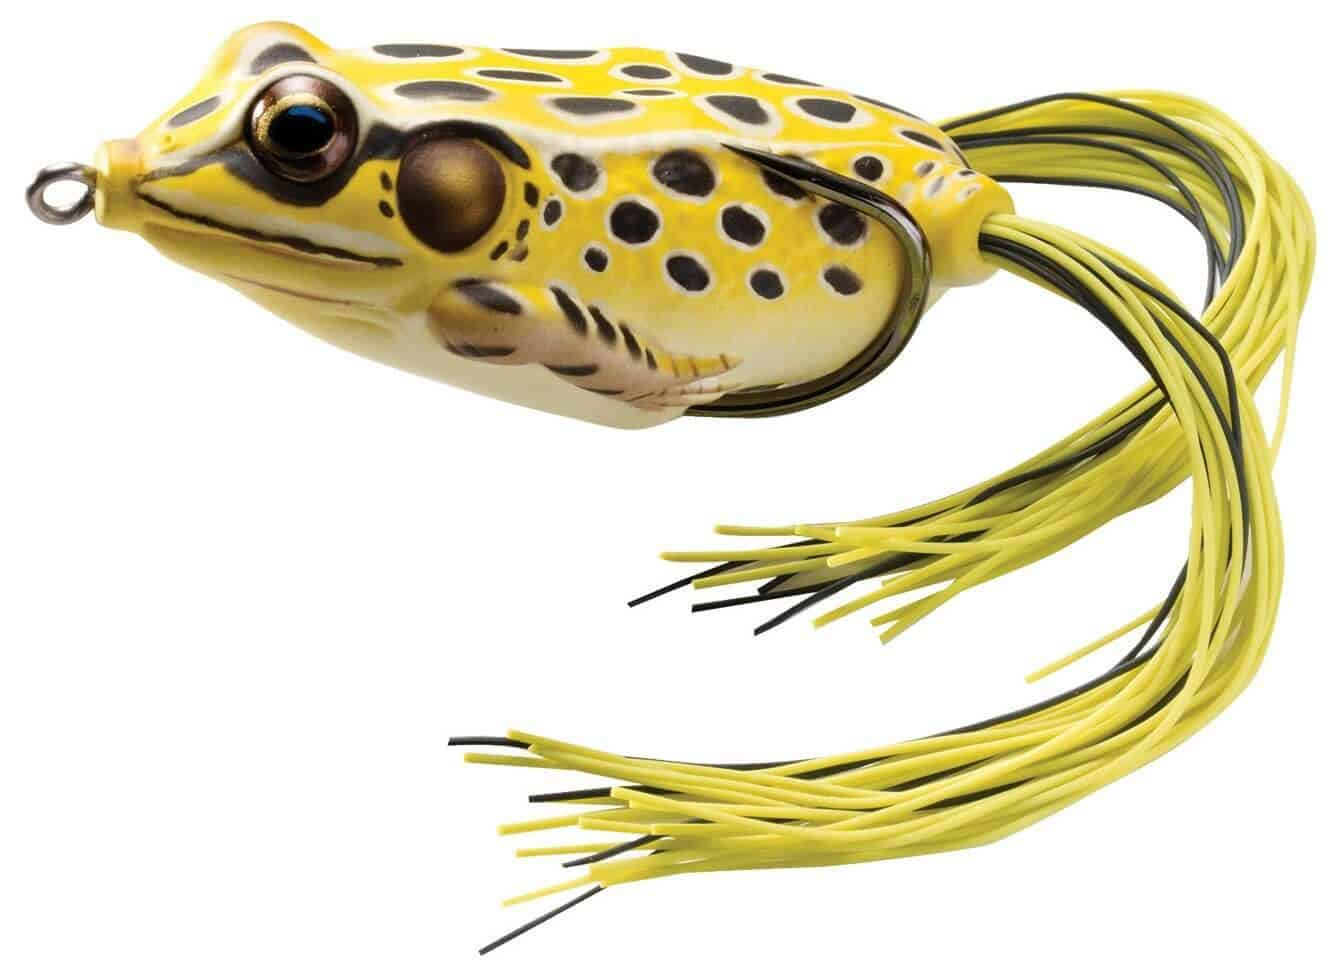 Top 5 largemouth bass fishing lures fins catcher for Bass pro fishing lures